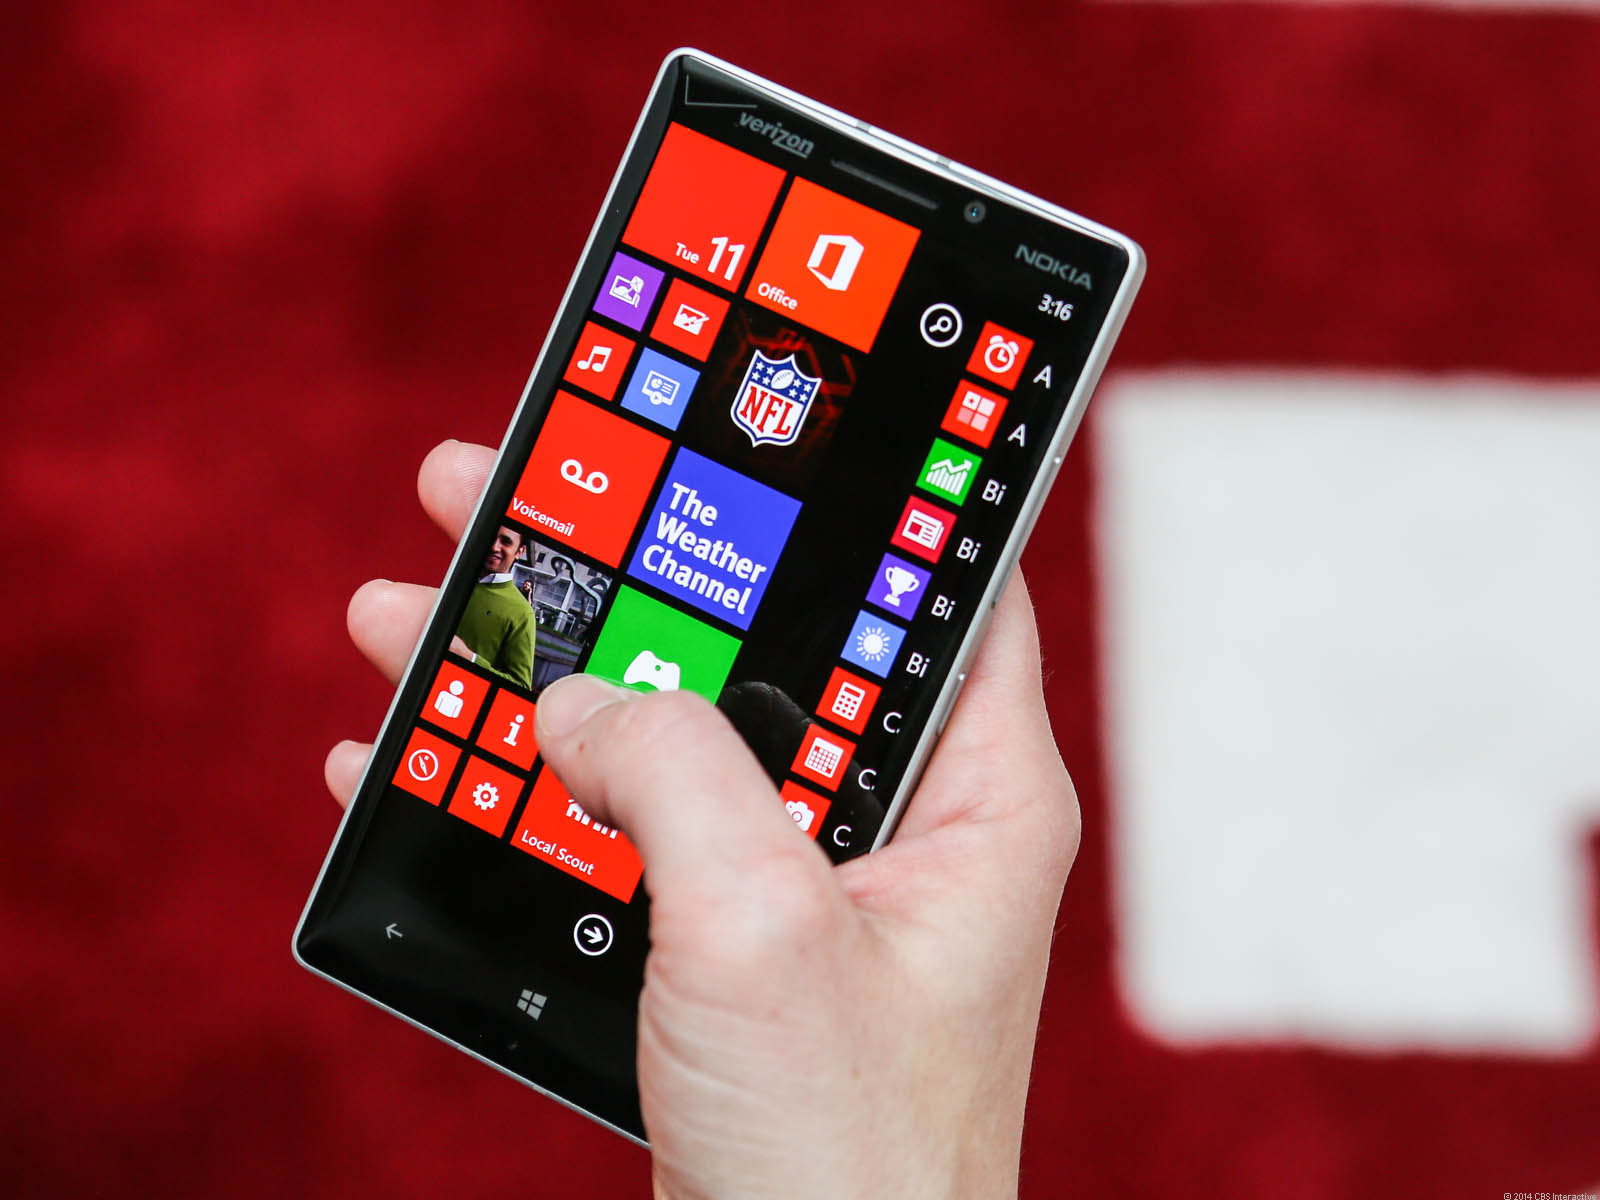 """<p>We first saw the three-column view in the <a href=""""http://reviews.cnet.com/smartphones/nokia-lumia-1520/4505-6452_7-35829228.html"""">6-inch Lumia 1520</a>, but the Icon uses it as well. One benefit is being able to squeeze more live tiles onto the display before needing to scroll down for more.</p>"""